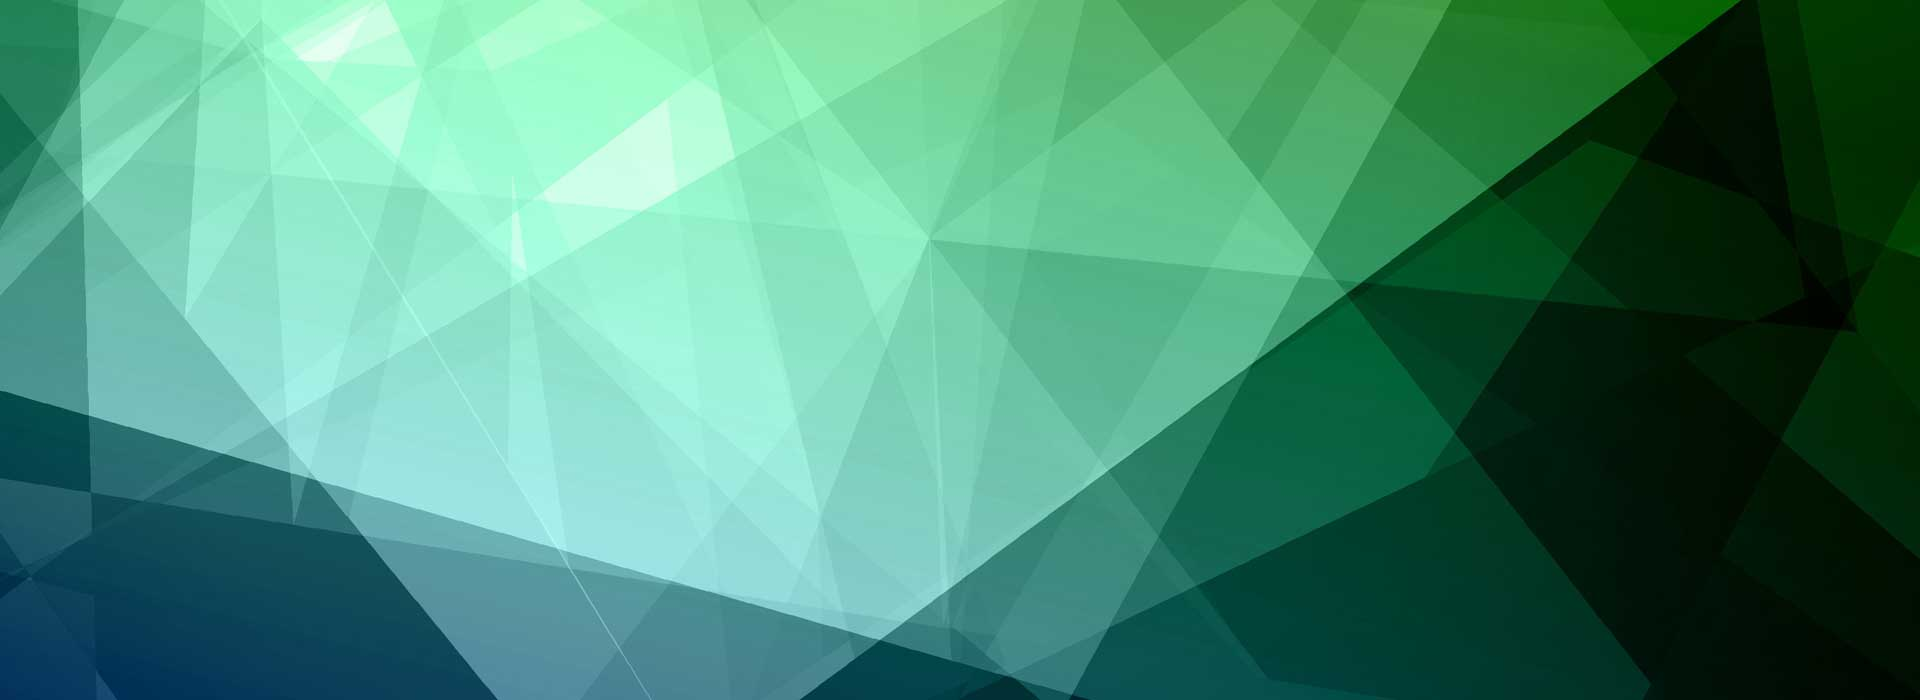 geometric, blues, greens, triangles, gradient